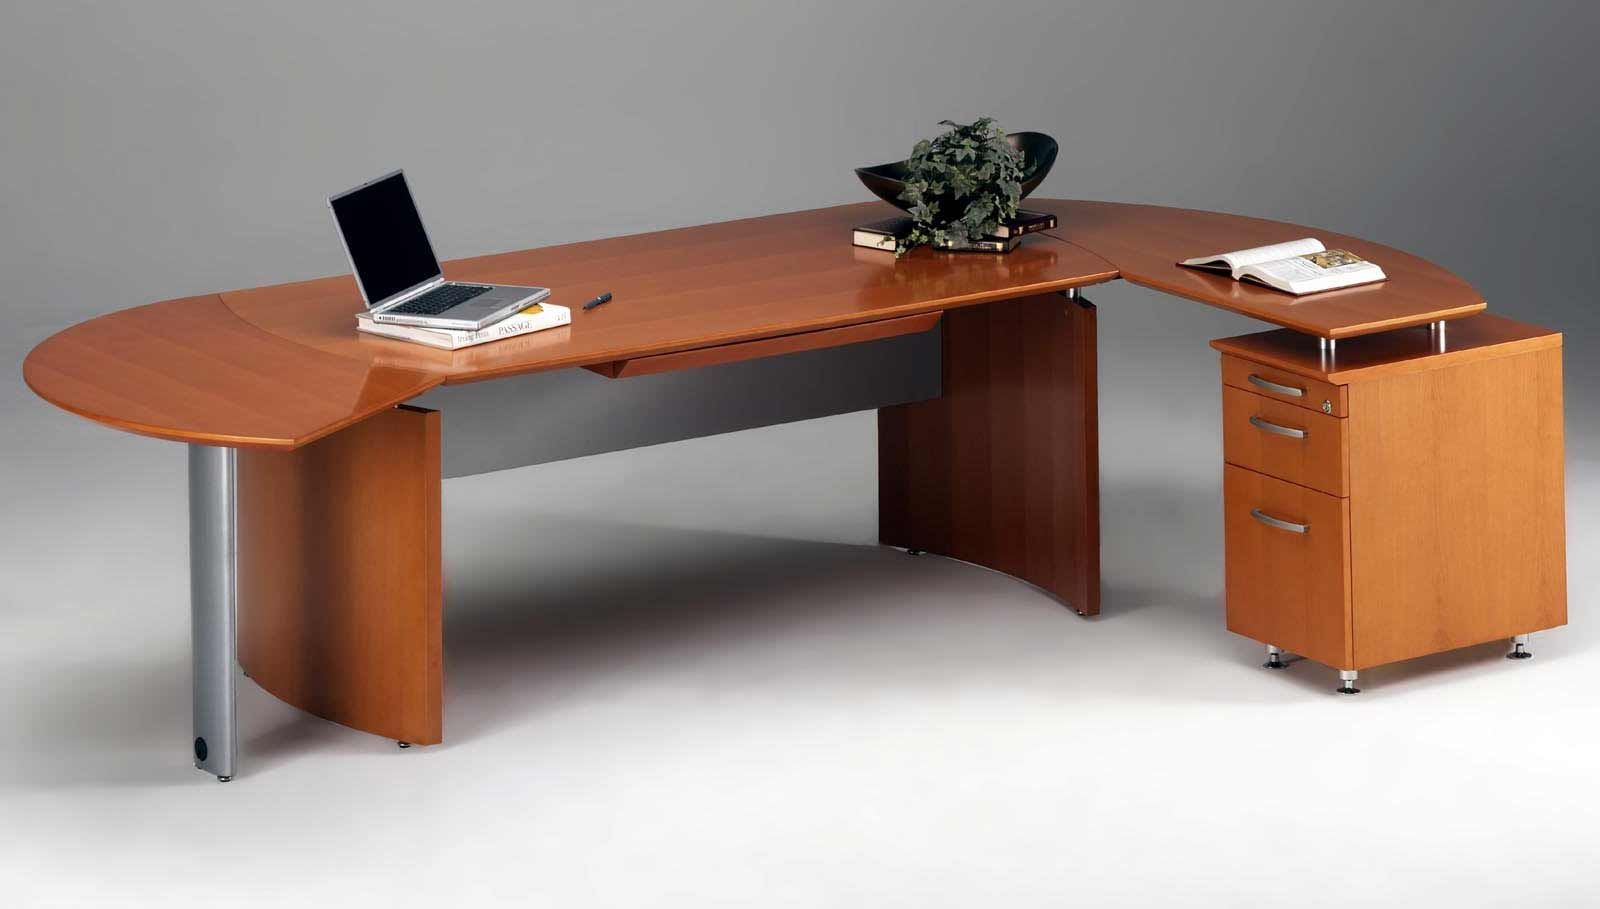 Napoli Wooden L Shaped Desk with Storage